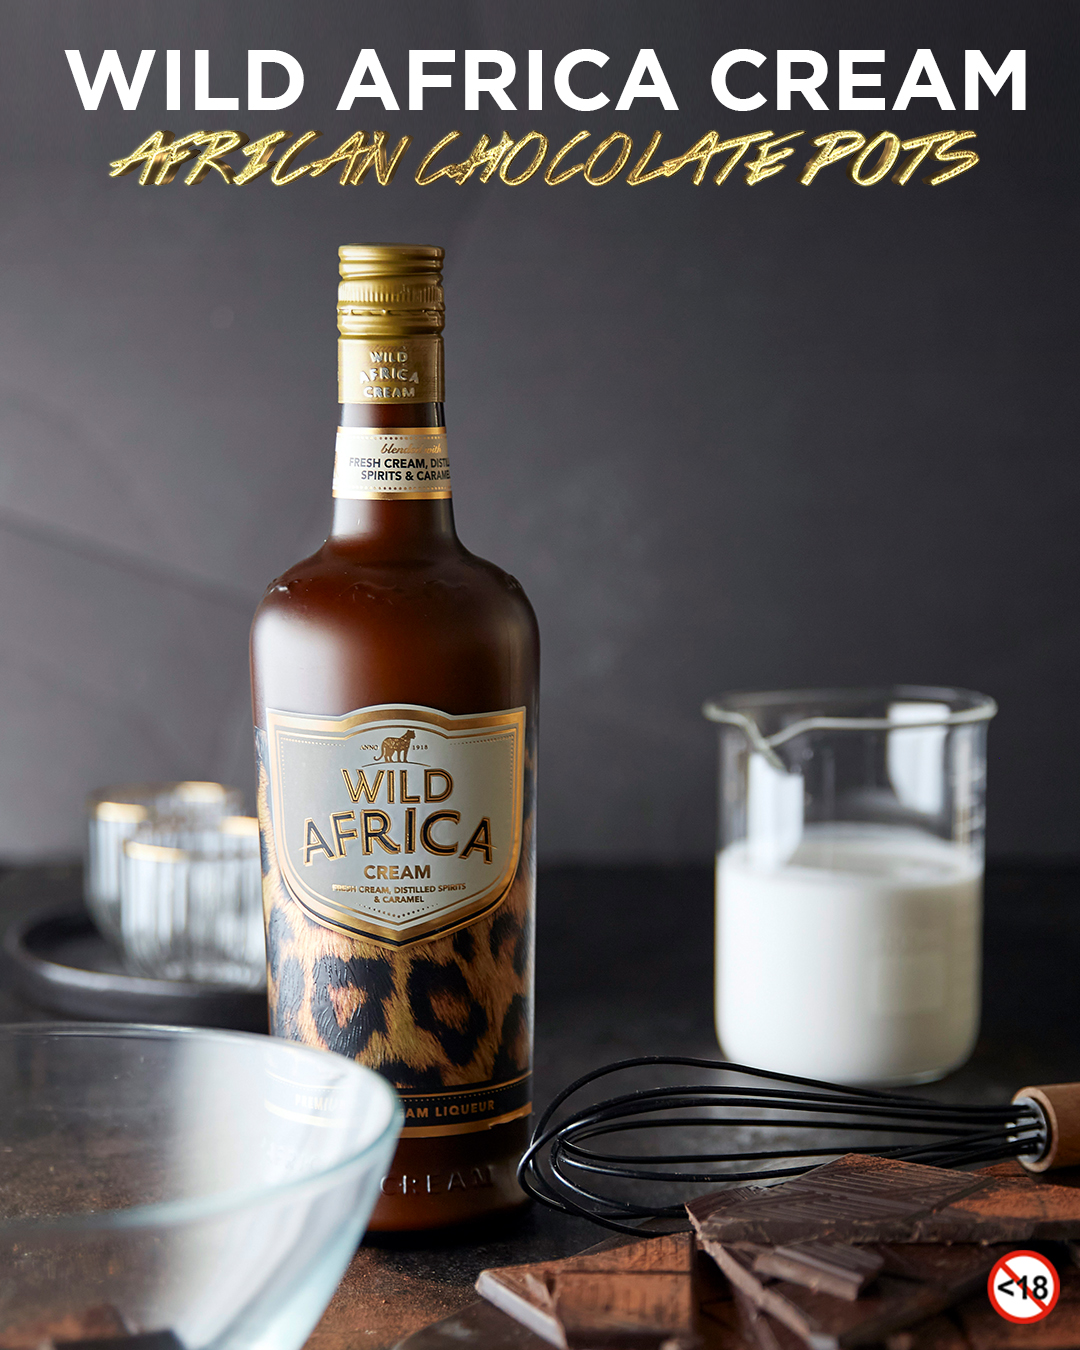 WILD AFRICA CREAM <BR>AFRICAN CHOCOLATE POTS